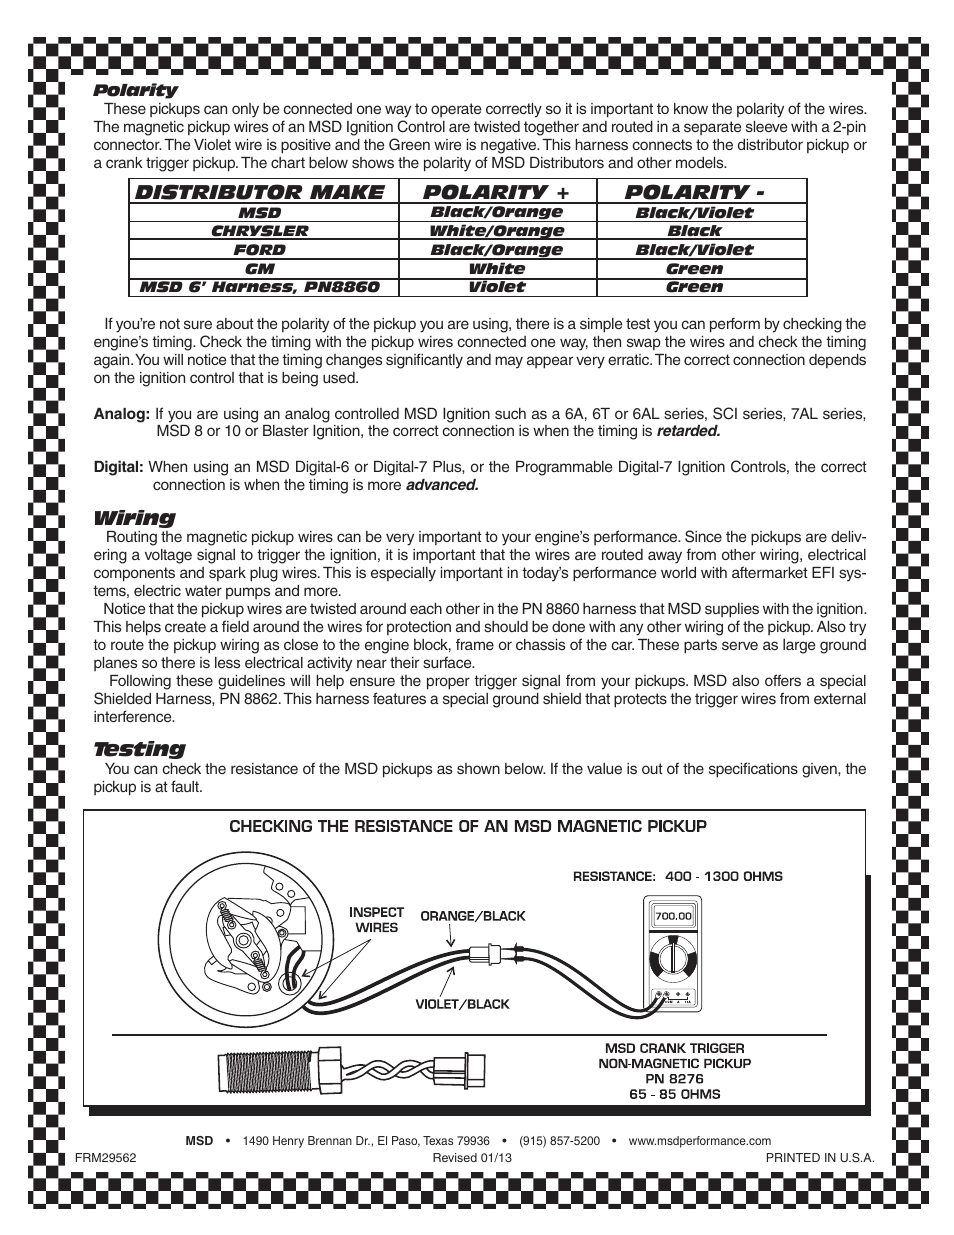 msd 8584 ford v8 351w billet distributor tech bulletin page2?resize\\\\\\\\\\\\\\\\\\\\\\\\\\\=665%2C861 msd 6al wireing question duraspark distributor ffcars on msd MSD Ignition Box Wiring Diagram at gsmx.co